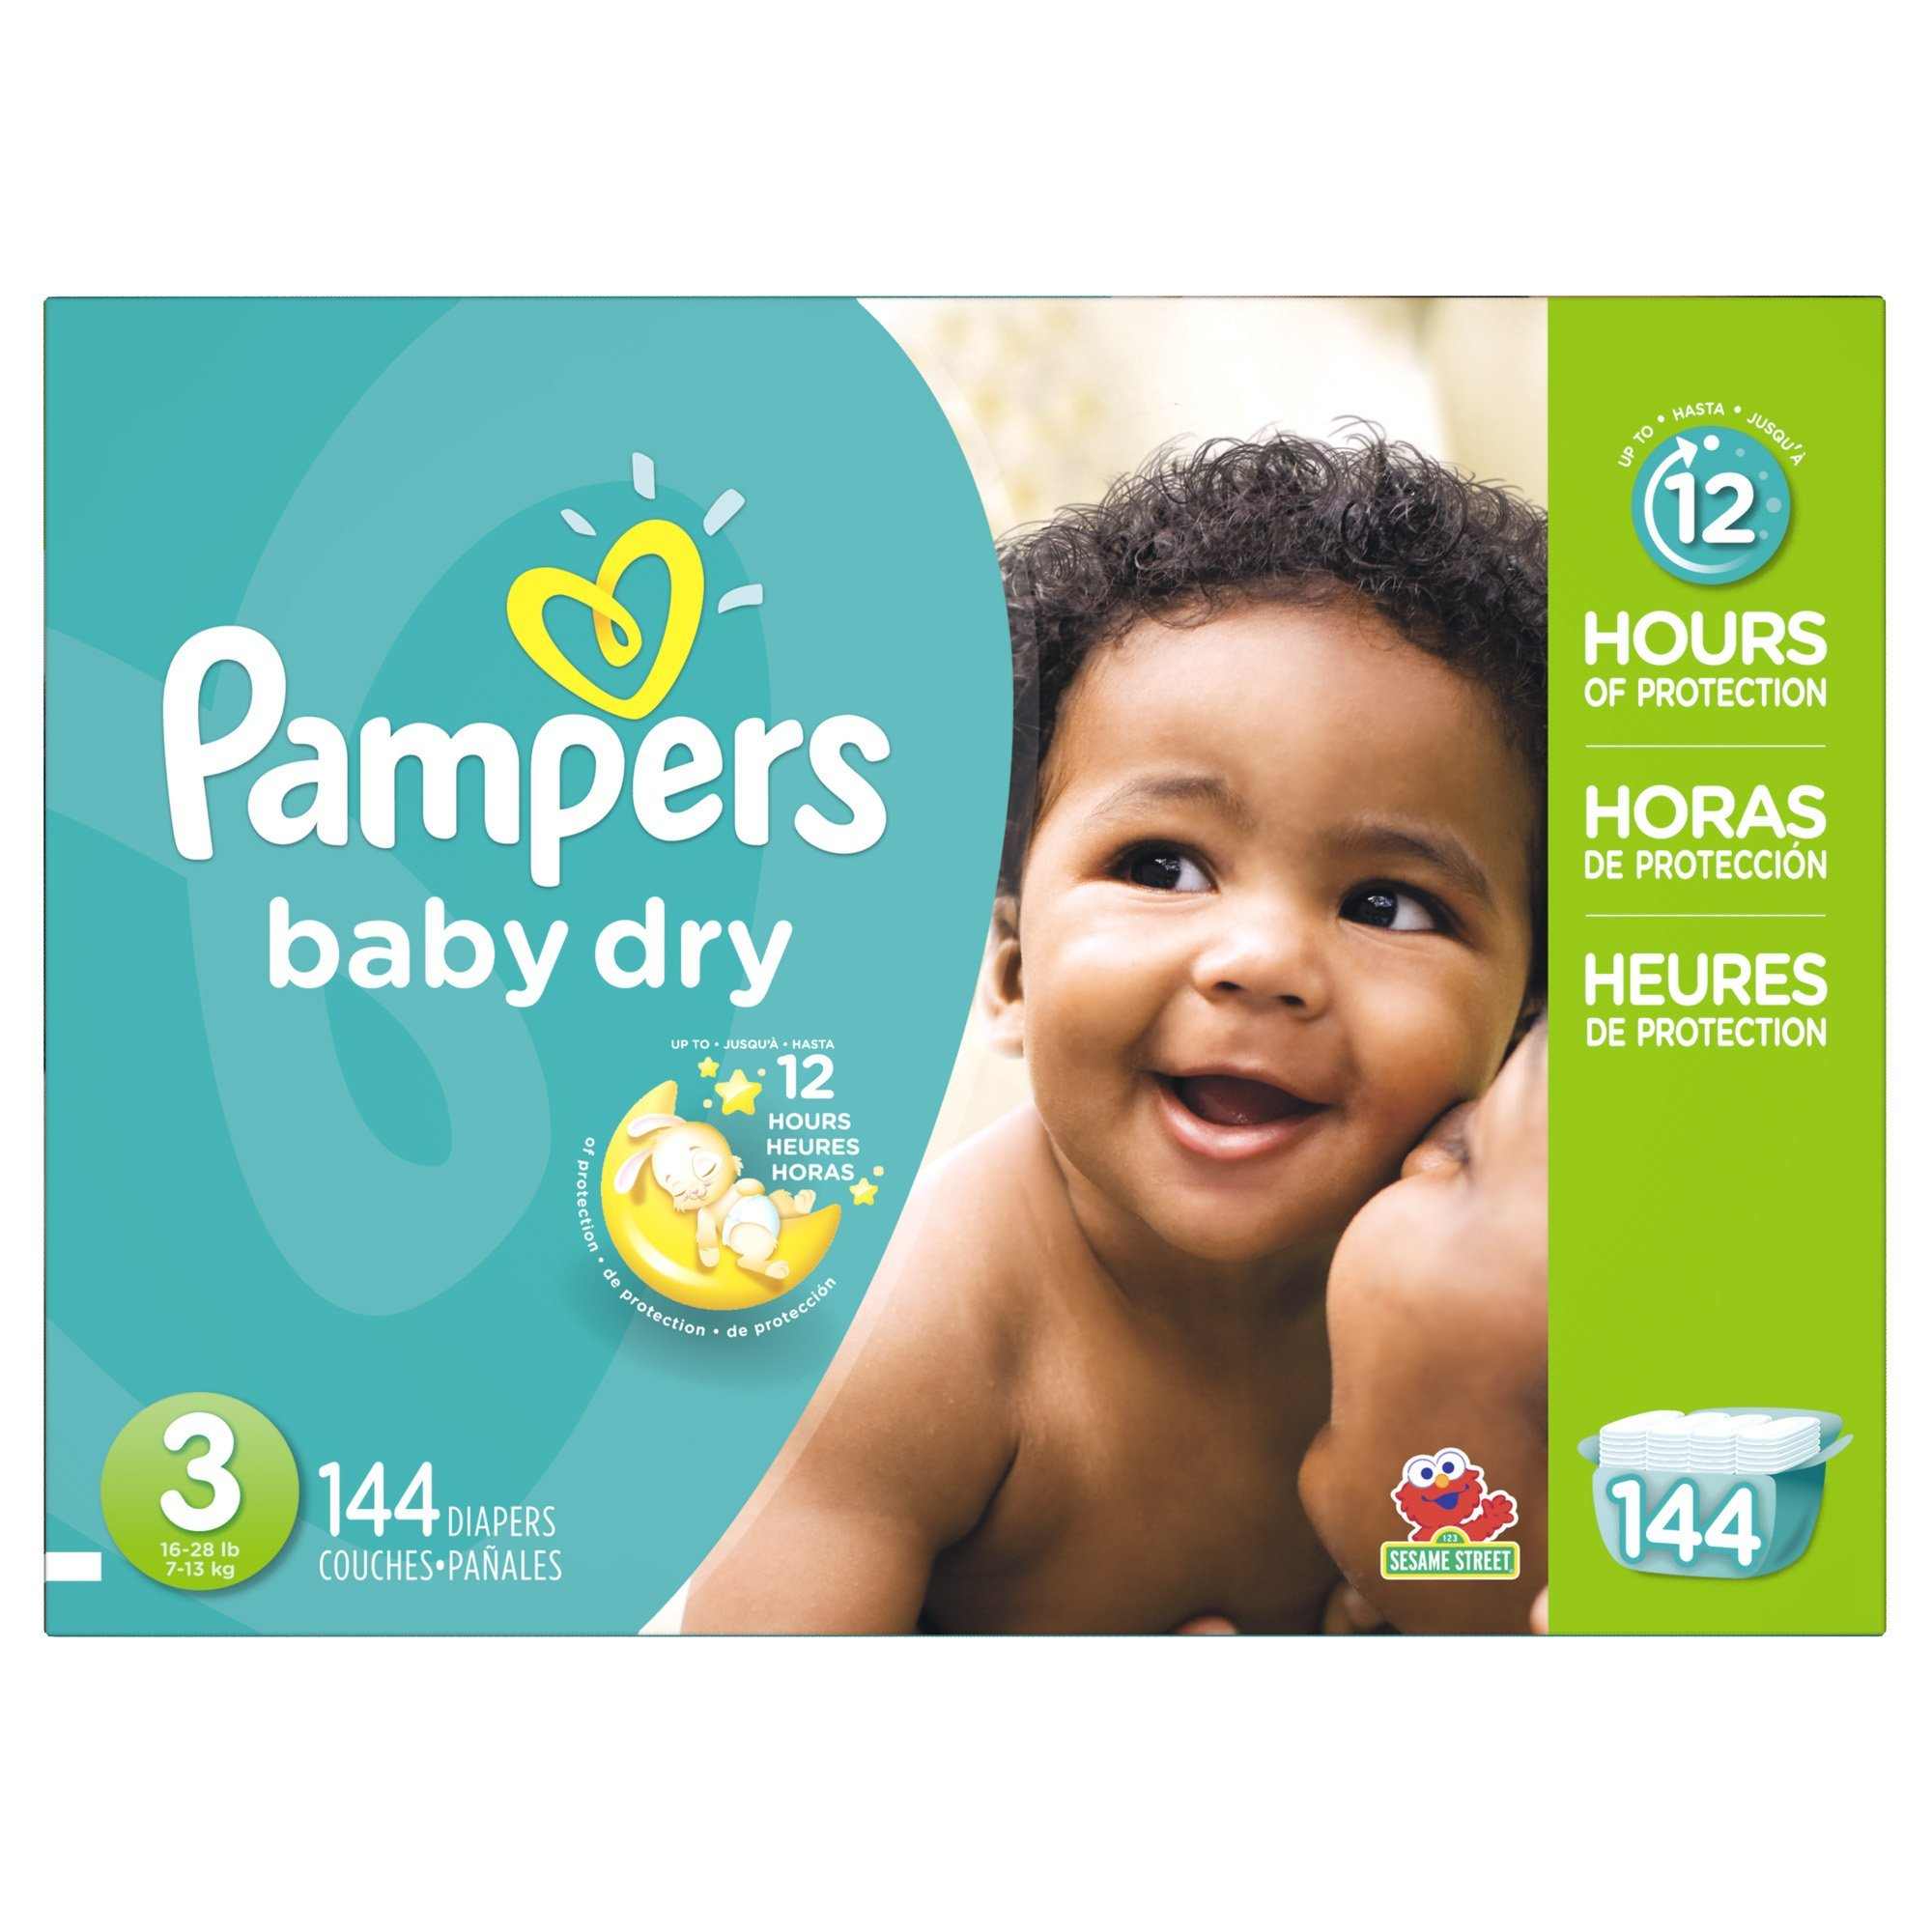 Pampers Baby Dry Diapers Giant Pack Size 3 144 Count 20